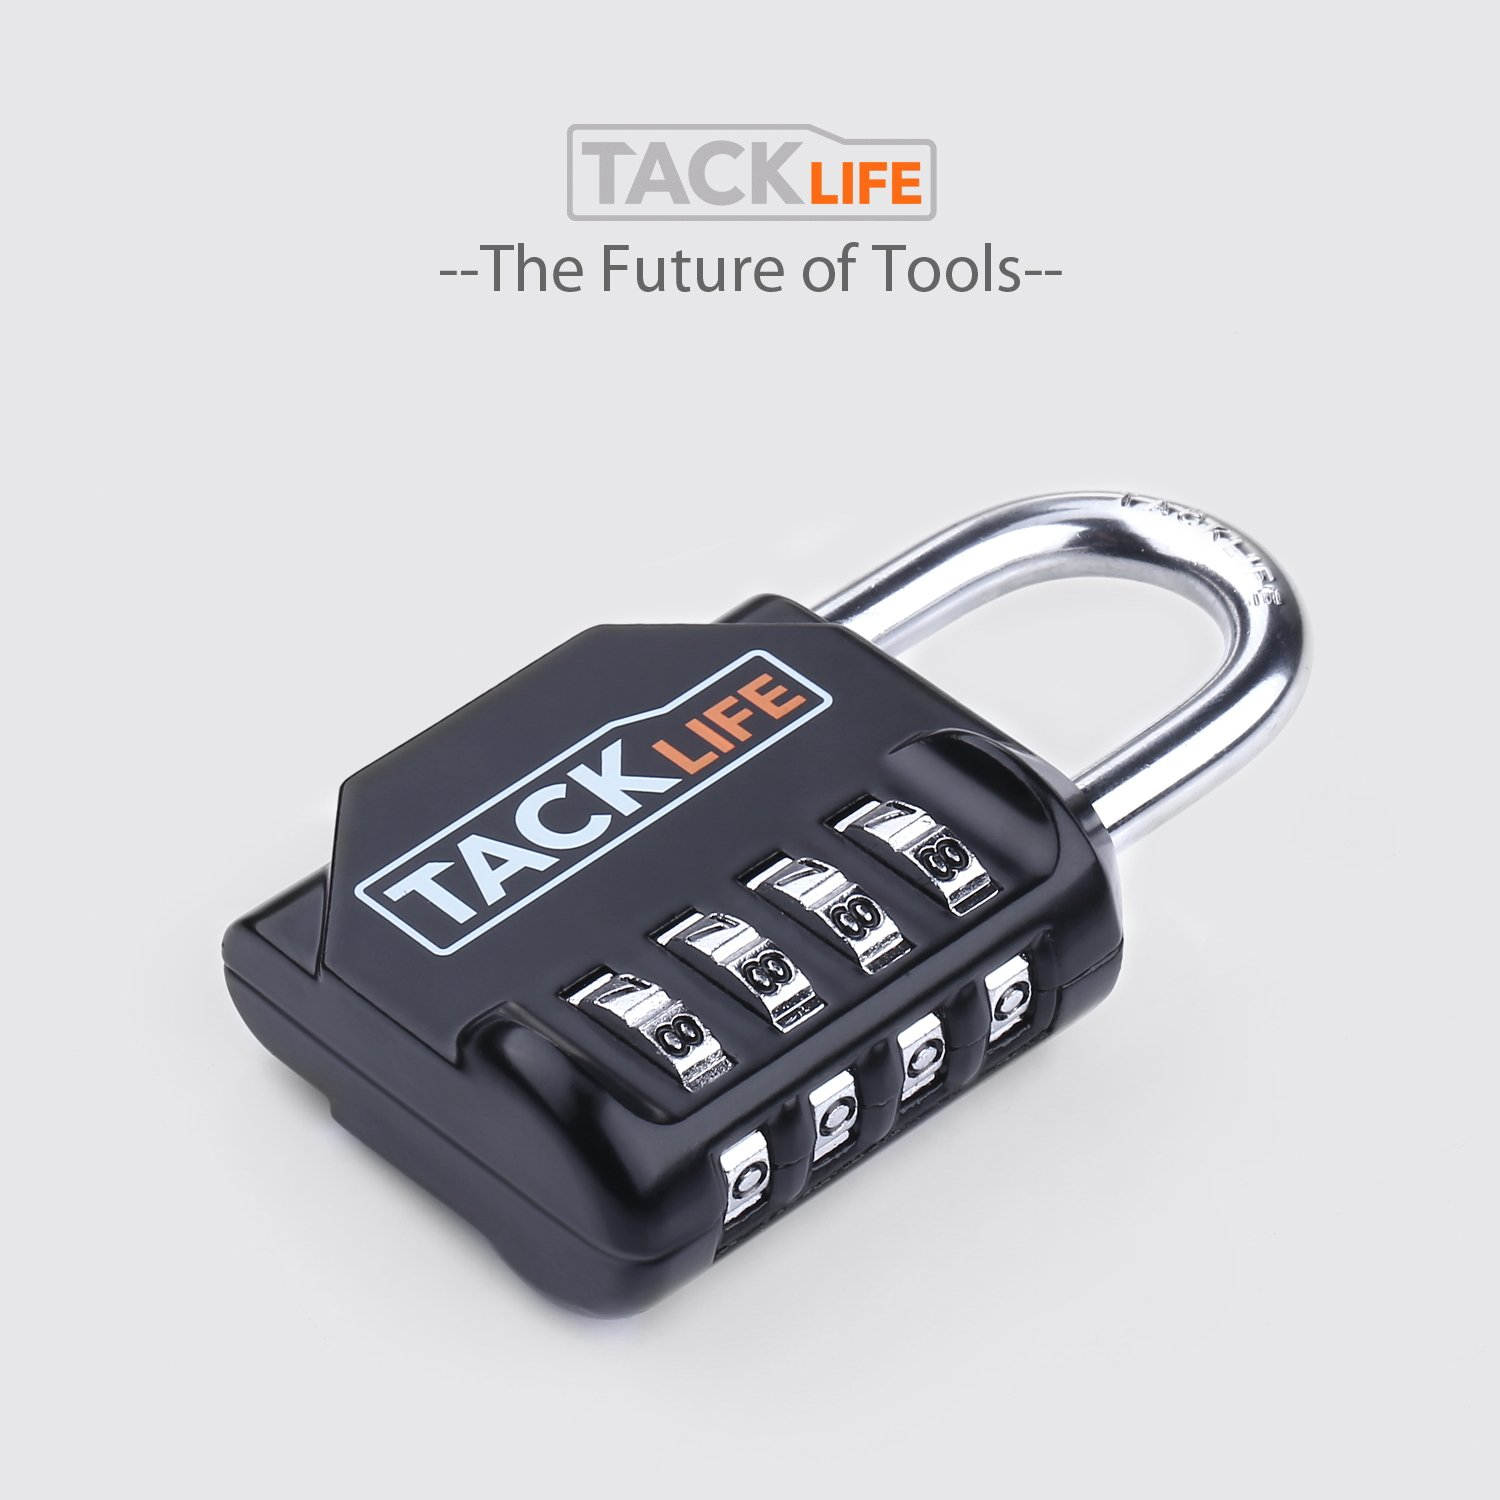 Padlock, Tacklife Luggage Locks HCL1B 4 Digit Combination Lock, Metal and Plated Steel Material for School, Gym or Sports Locker, Case, Toolbox, Fence, Hasp Cabinet and Storage, Pack of 2